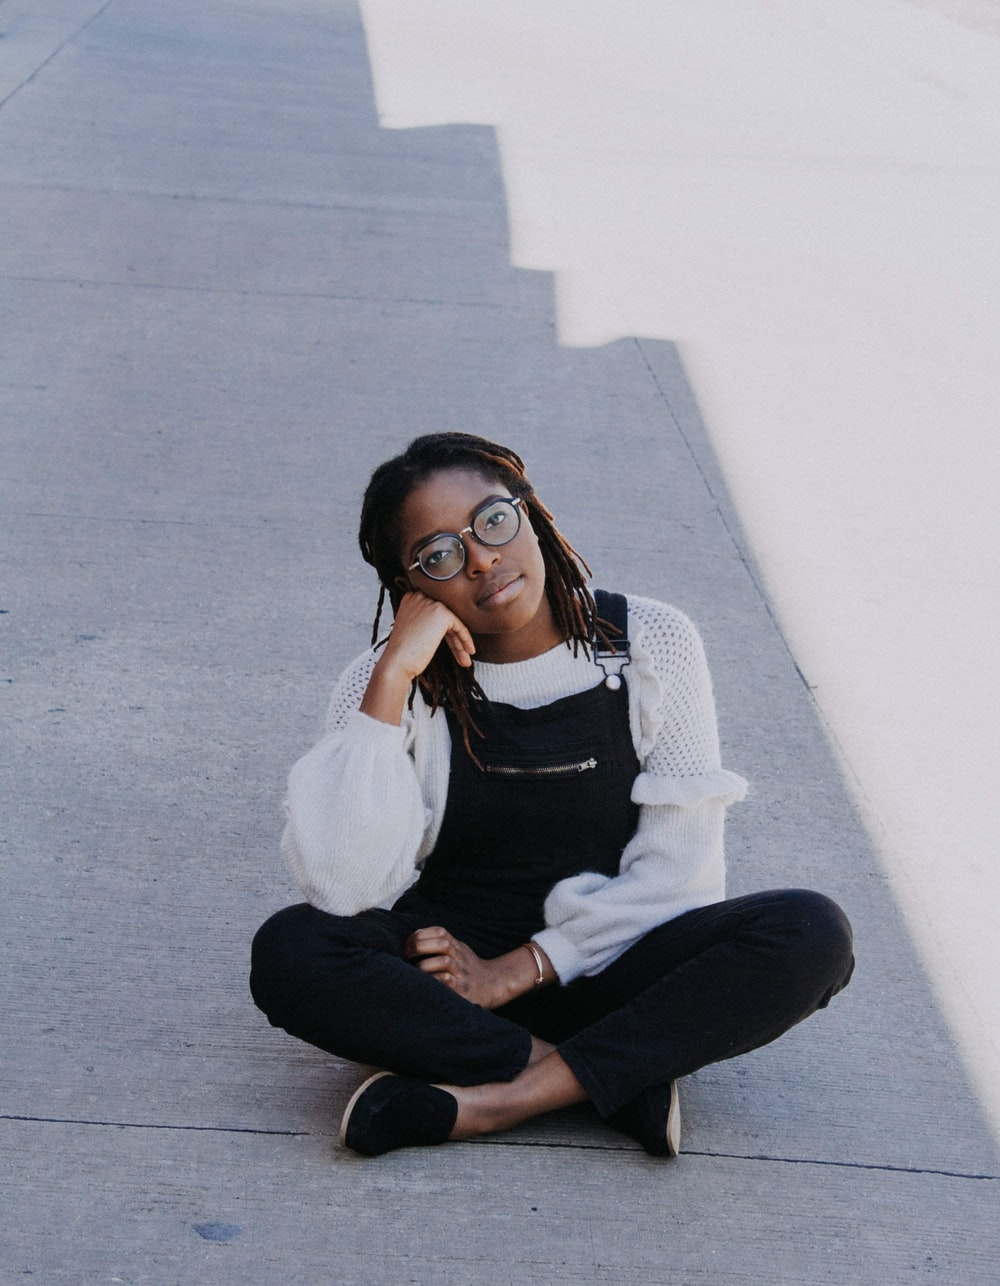 woman in overall pants sitting on pavement